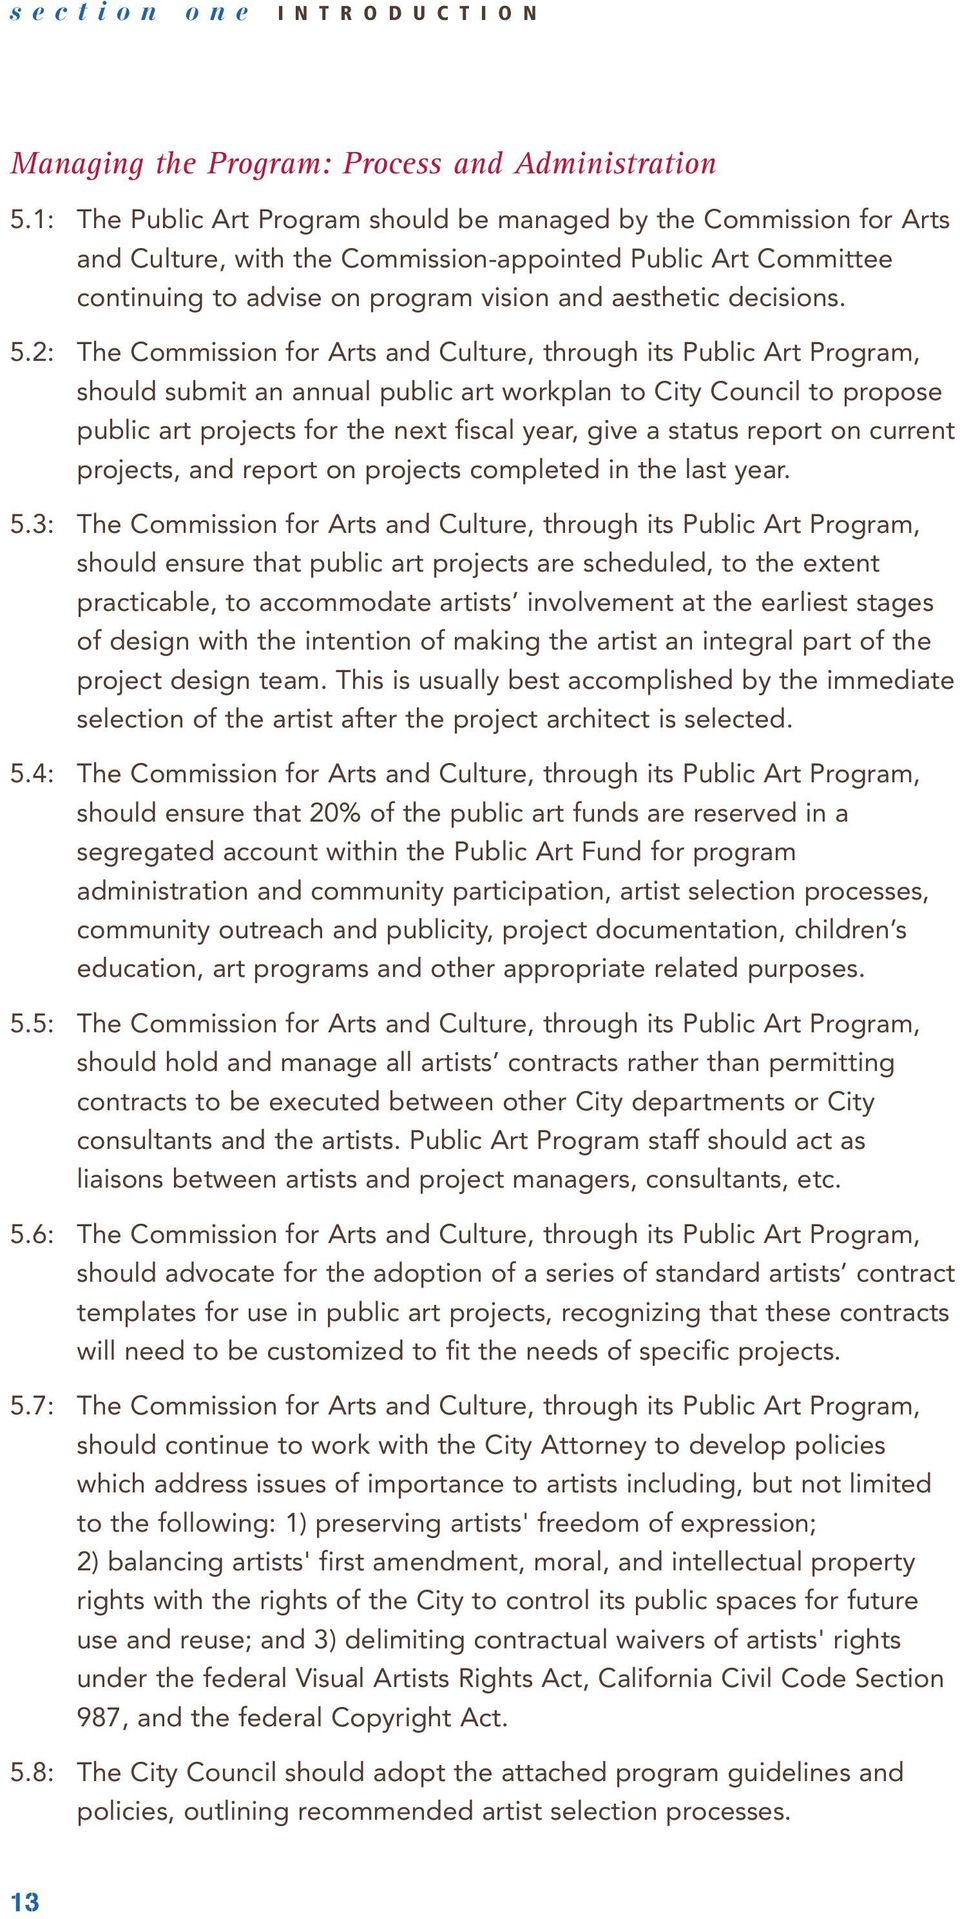 5.2: The Commission for Arts and Culture, through its Public Art Program, should submit an annual public art workplan to City Council to propose public art projects for the next fiscal year, give a